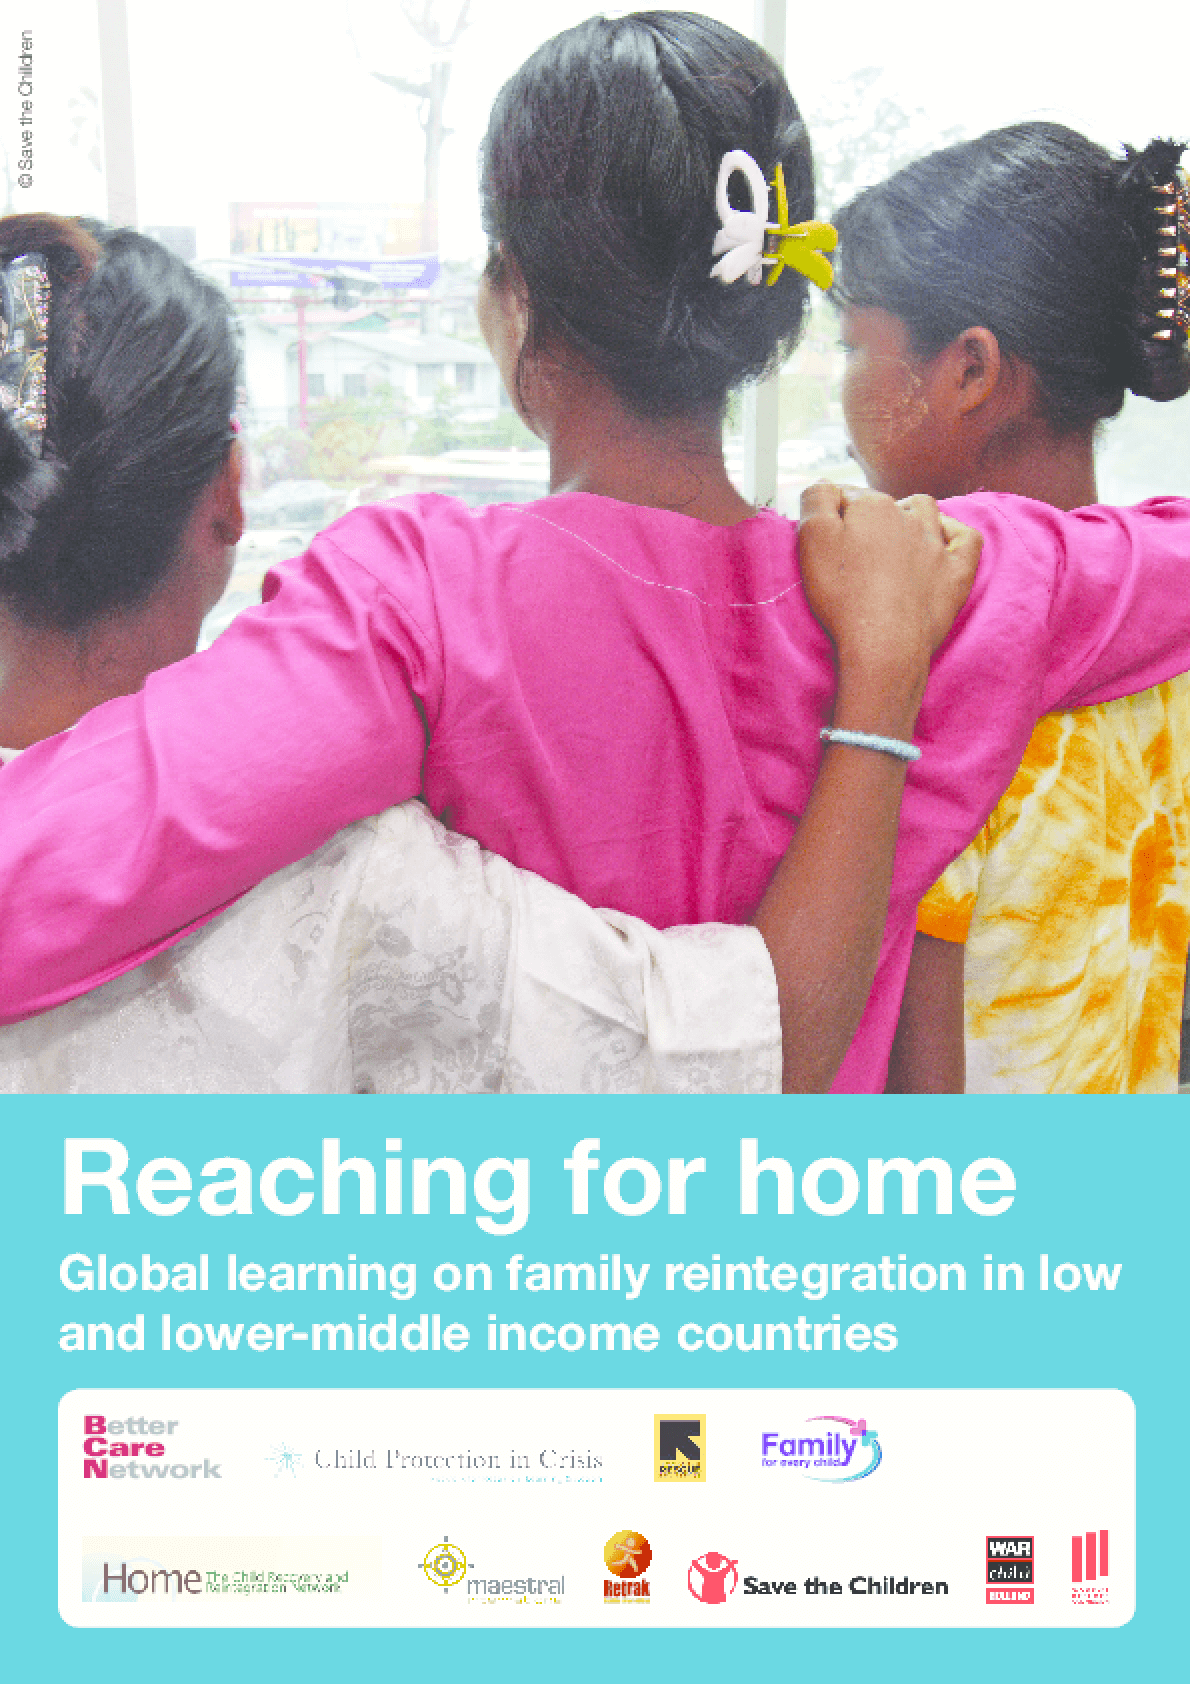 Reaching for Home: Global Learning on Family Reintegration in Low and Lower-Middle Income Countries